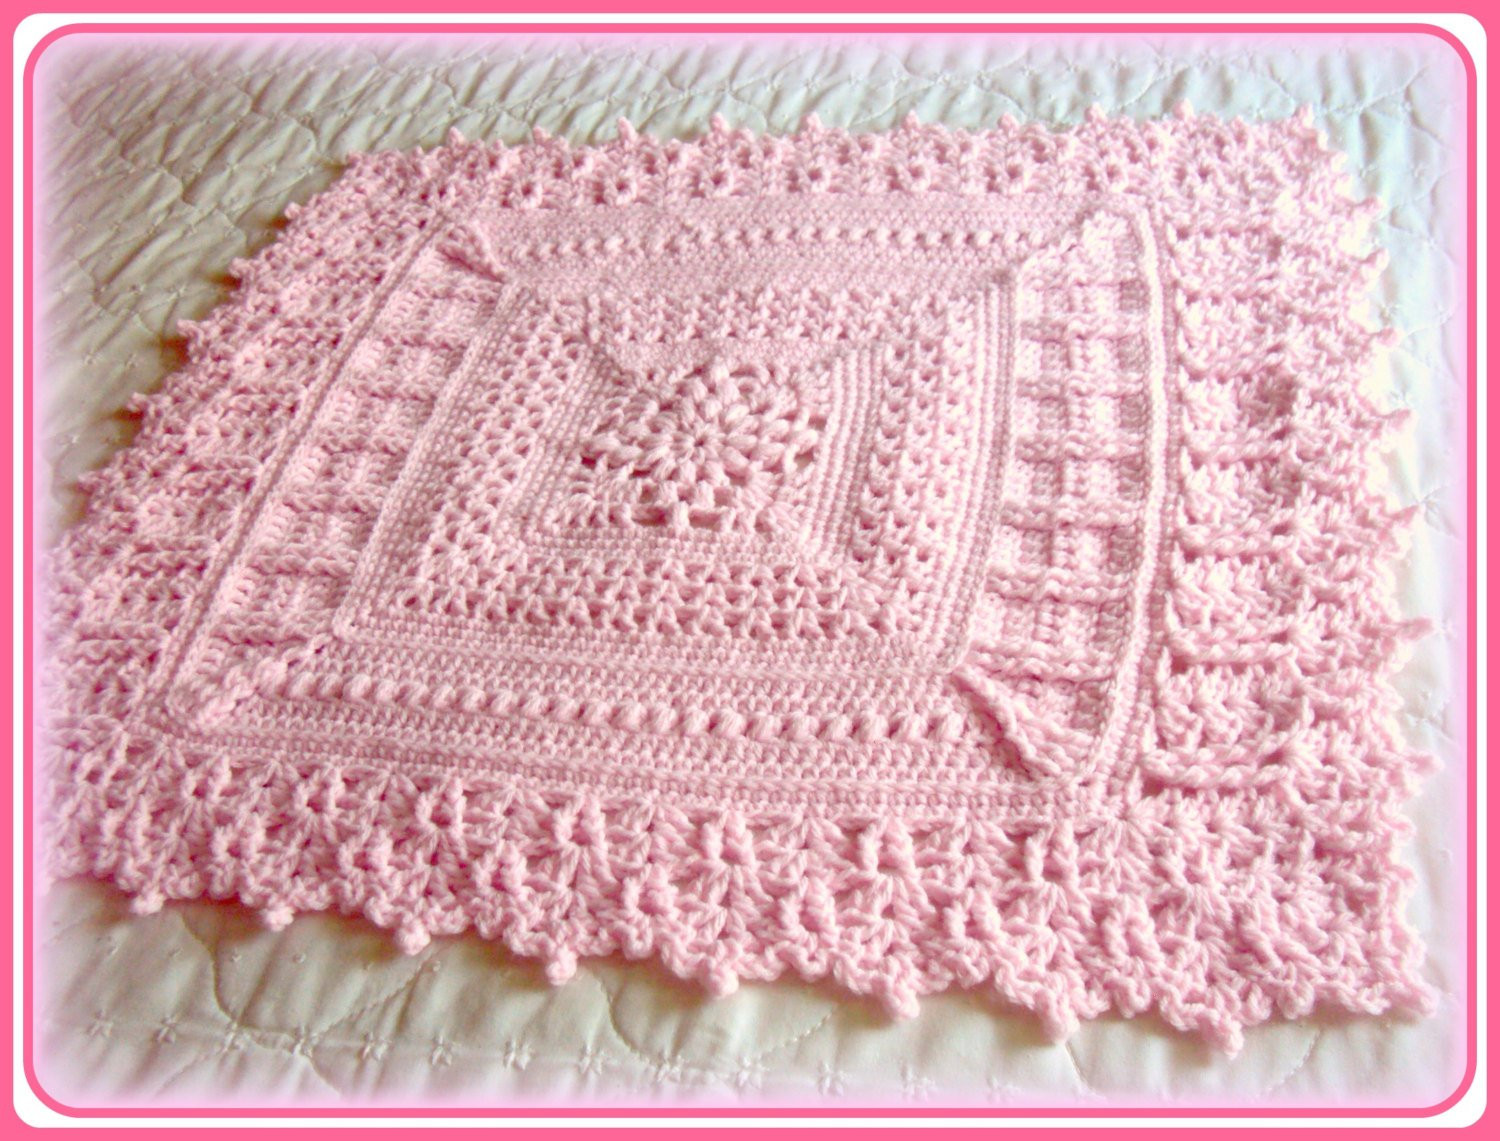 Lacy Baby Blanket Crochet Pattern Lovely Lacy Crochet Free Baby Blanket Patterns Of New 40 Images Lacy Baby Blanket Crochet Pattern